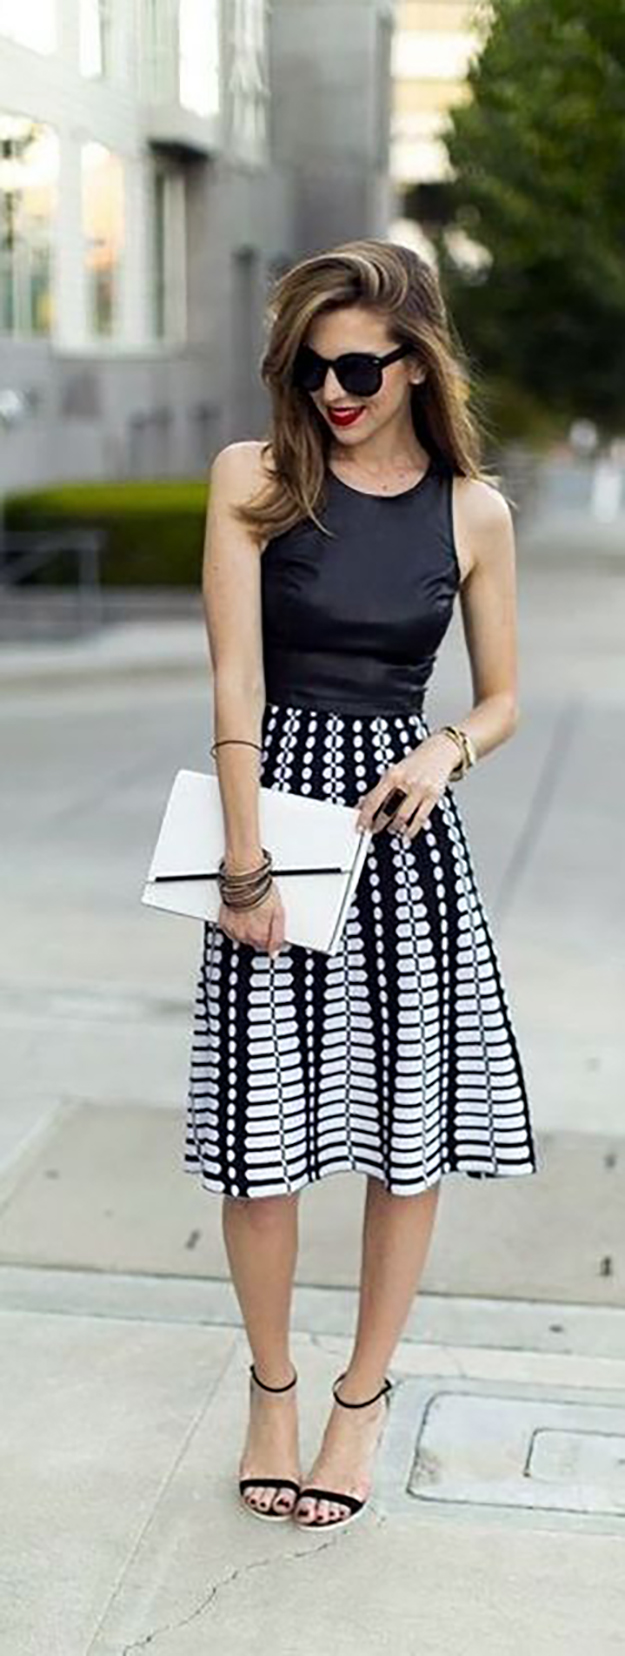 15 summer looks for the office Look 14